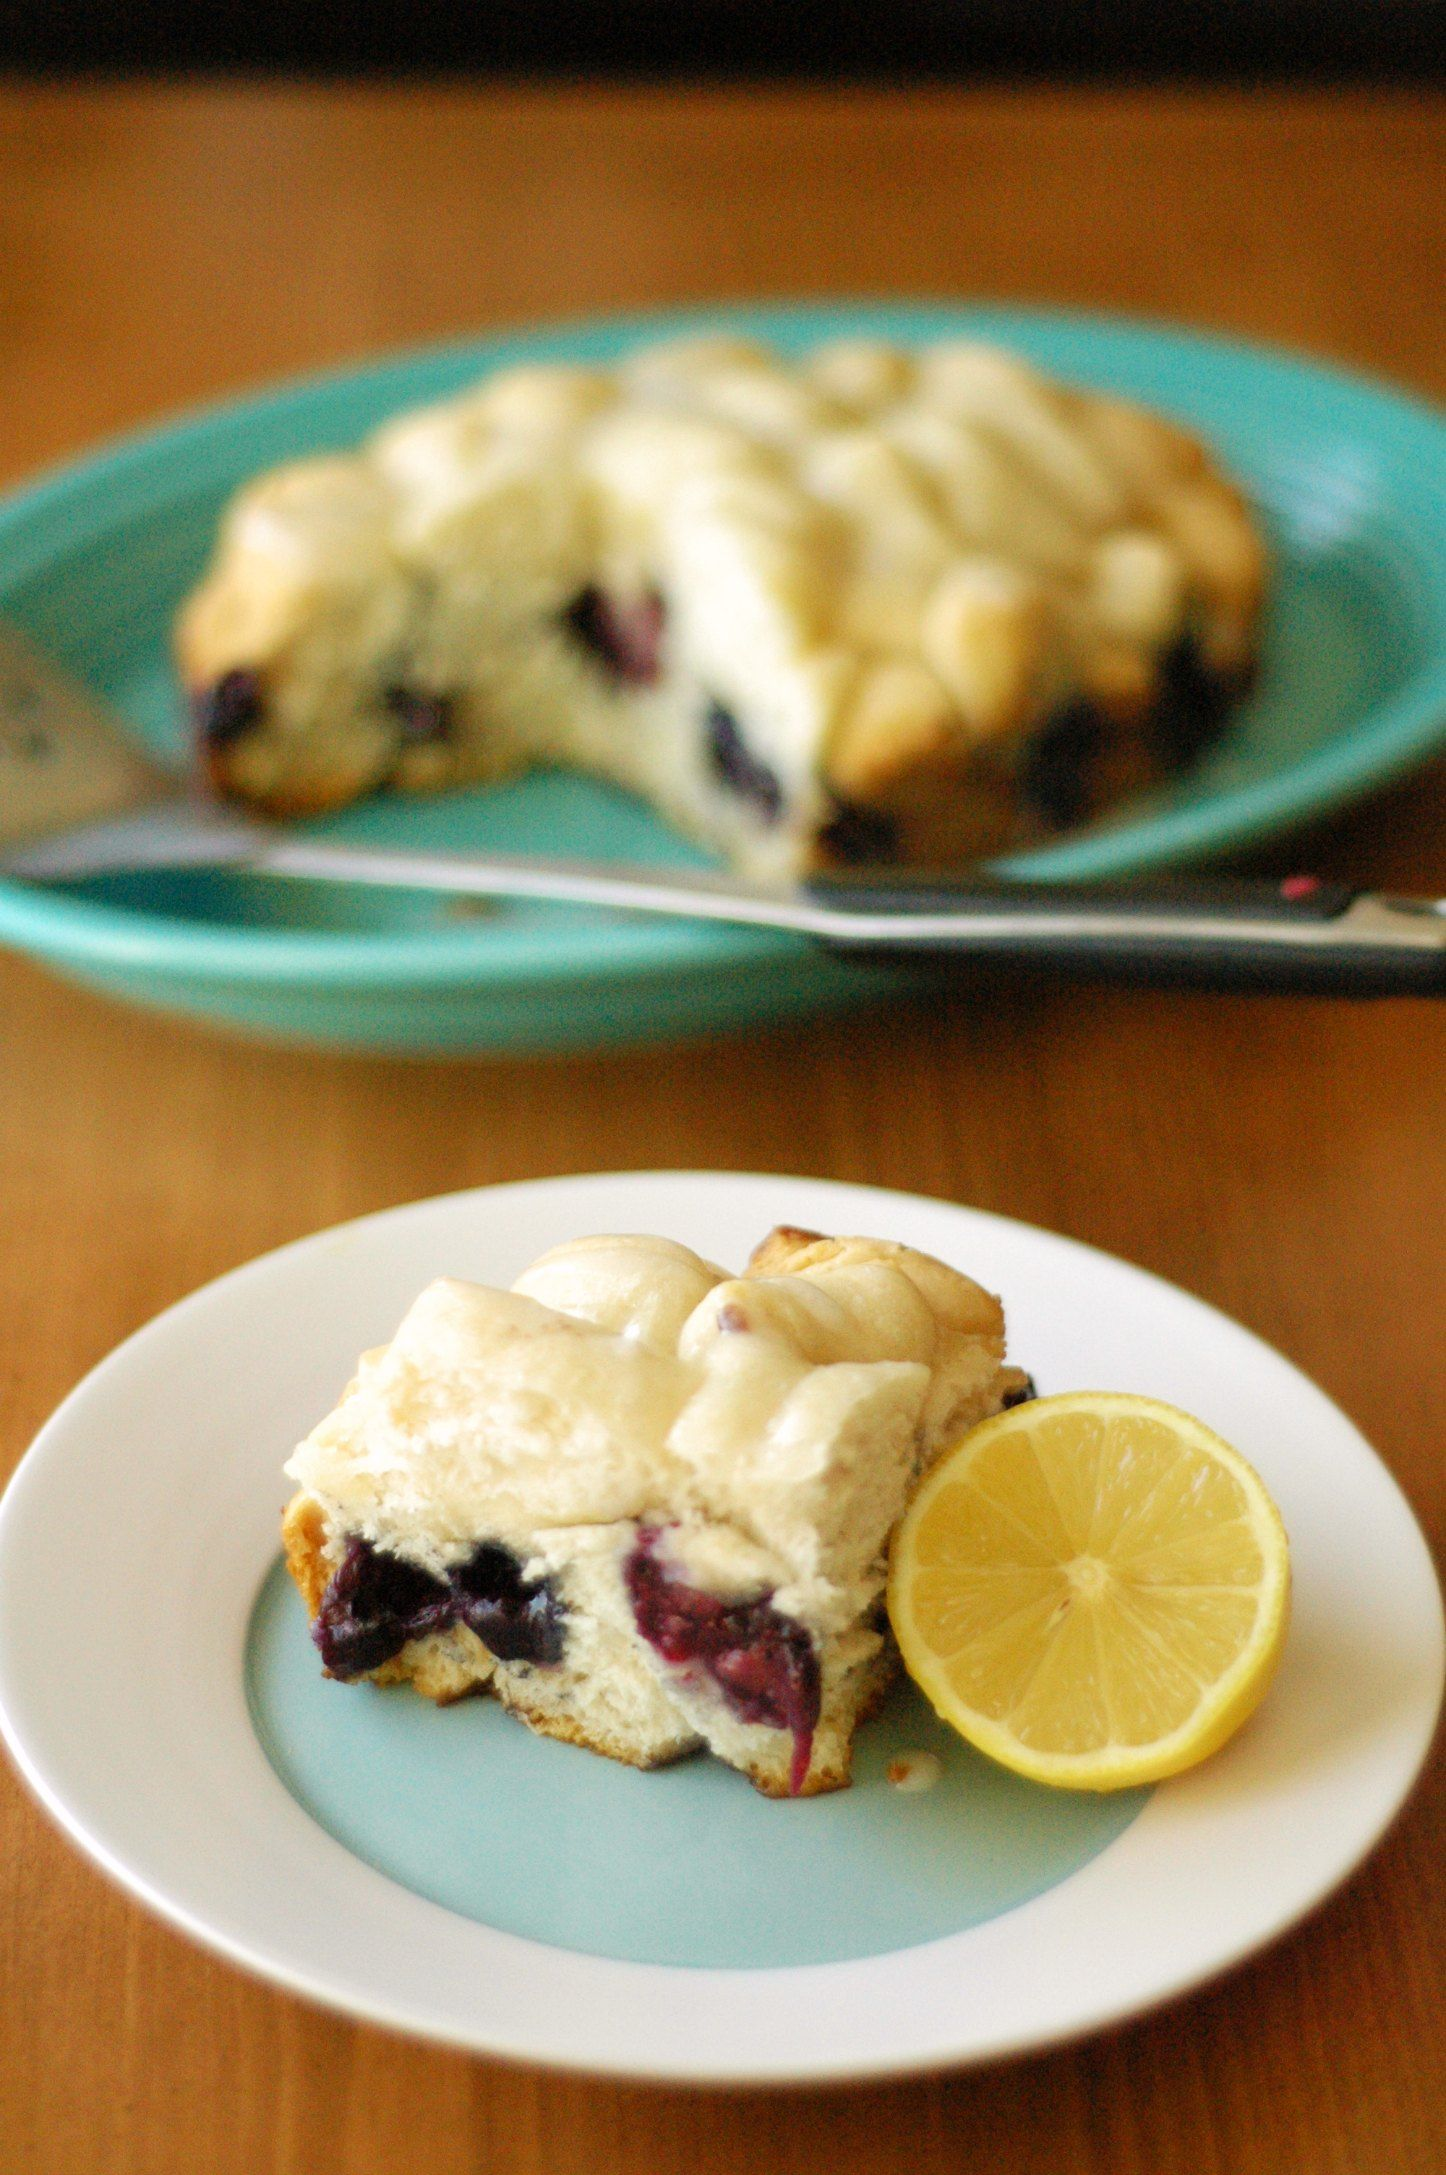 Slow Cooker Blueberry Breakfast Cake with Lemon Drizzle Icing - Slow Cooker Gourmet